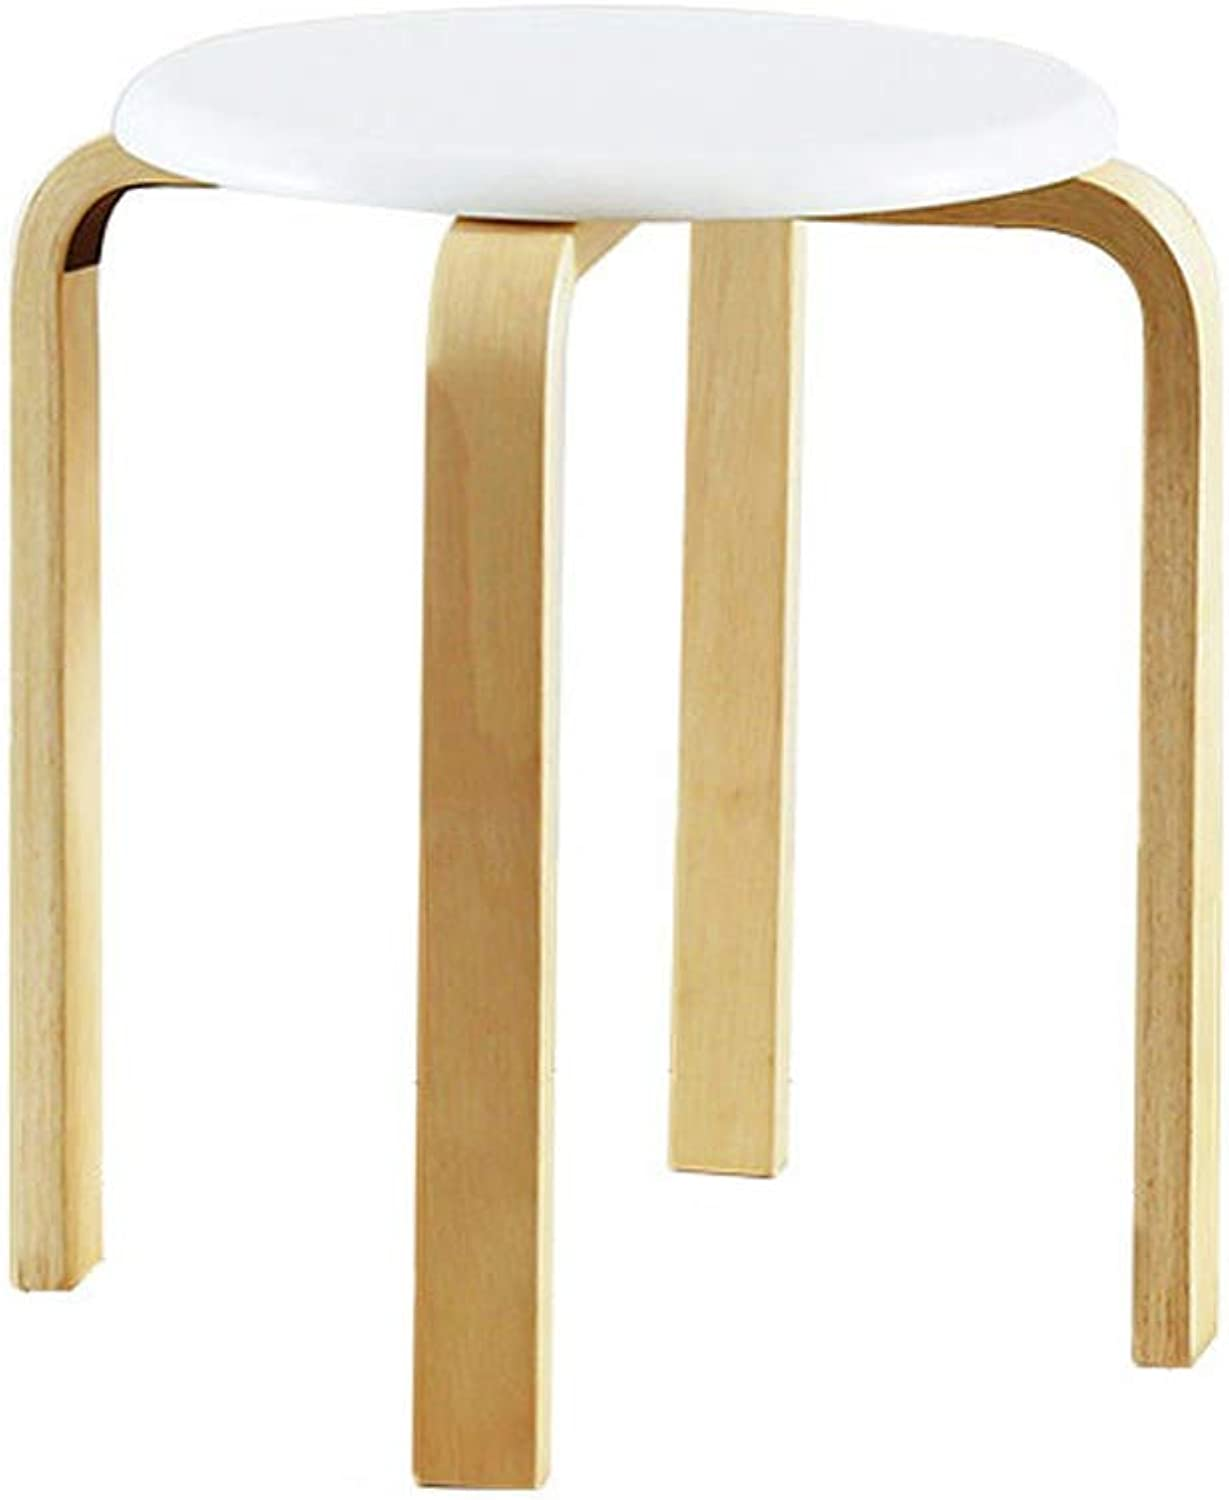 Lxn Modern Minimalist Solid Wood Stool Fashion Creative Stool Home Adult Small Bench - Stackable - 1PCS